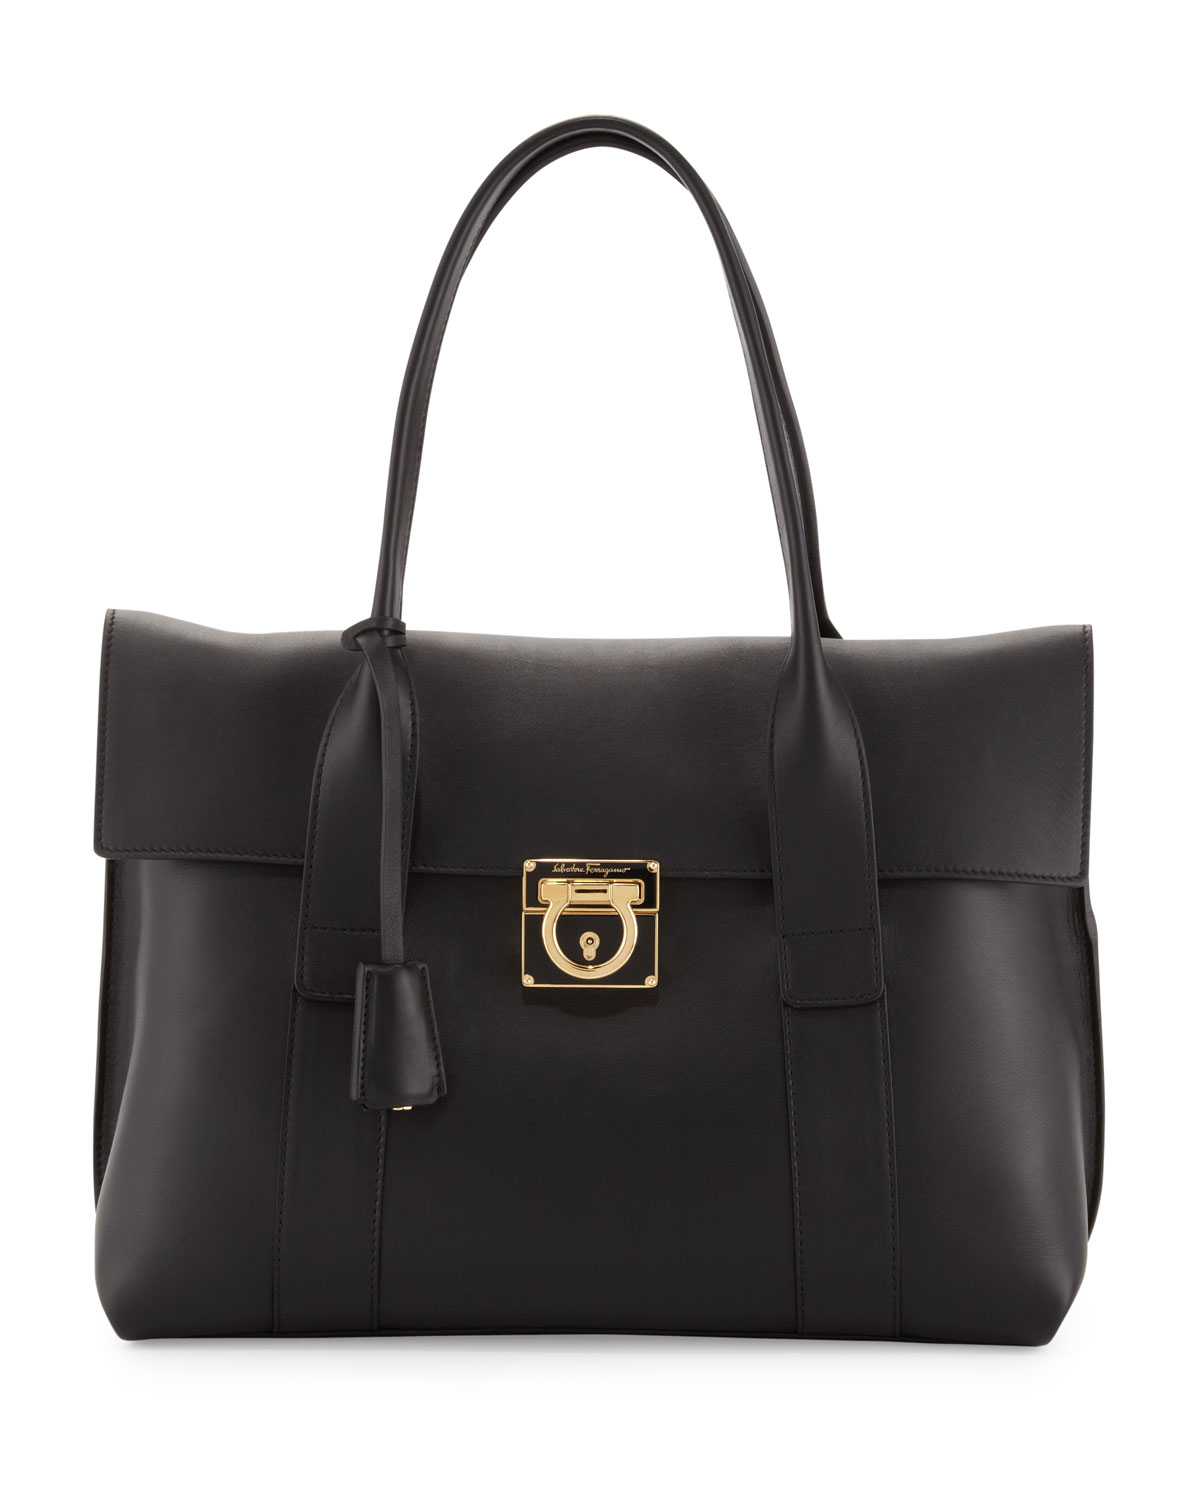 23840e496b76 Lyst - Ferragamo Sookie Medium Leather Satchel Bag Black in Black